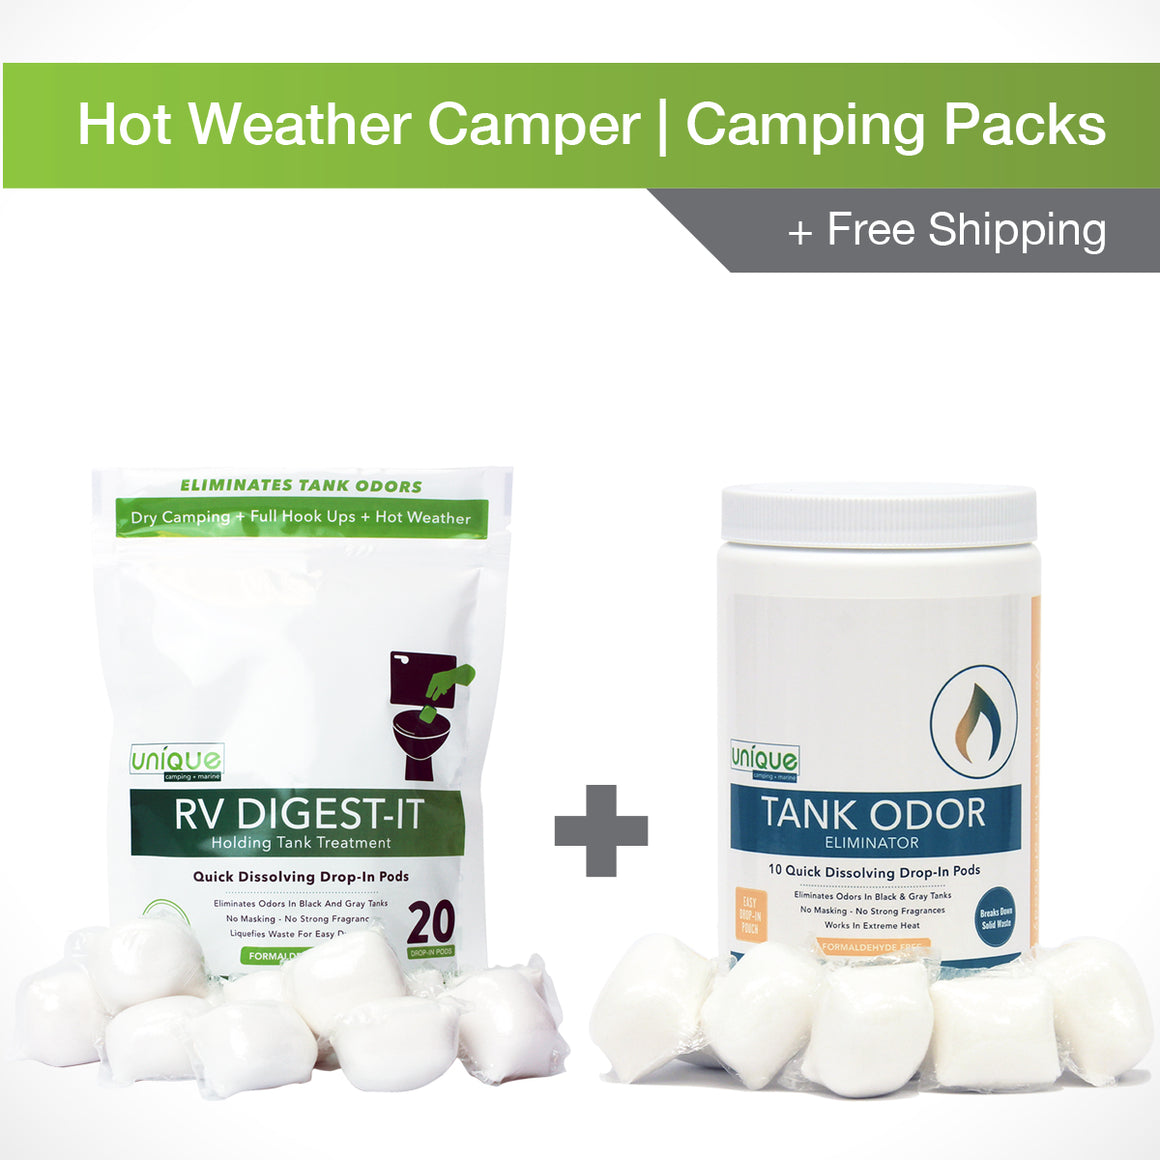 Our Hot Weather Camping Pack treats your holding tank in the hottest temperatures. Use RV Digest-It to break down waste and Tank Odor Eliminator to Eliminate tough odors in high heat!